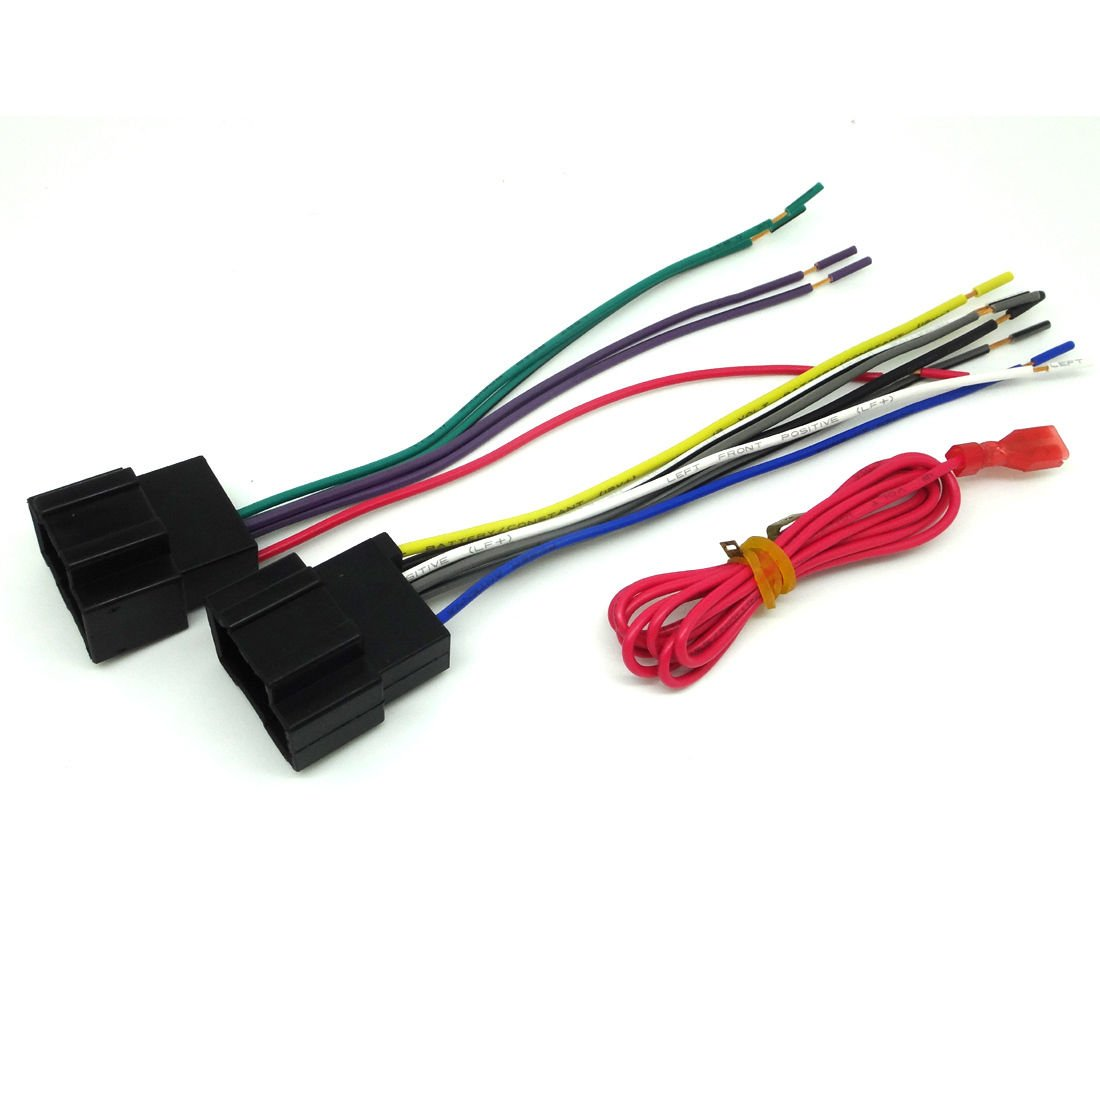 61nu0LRNVFL._SL1100_ amazon com gm car stereo cd player wiring harness wire harness wire for car stereo at metegol.co